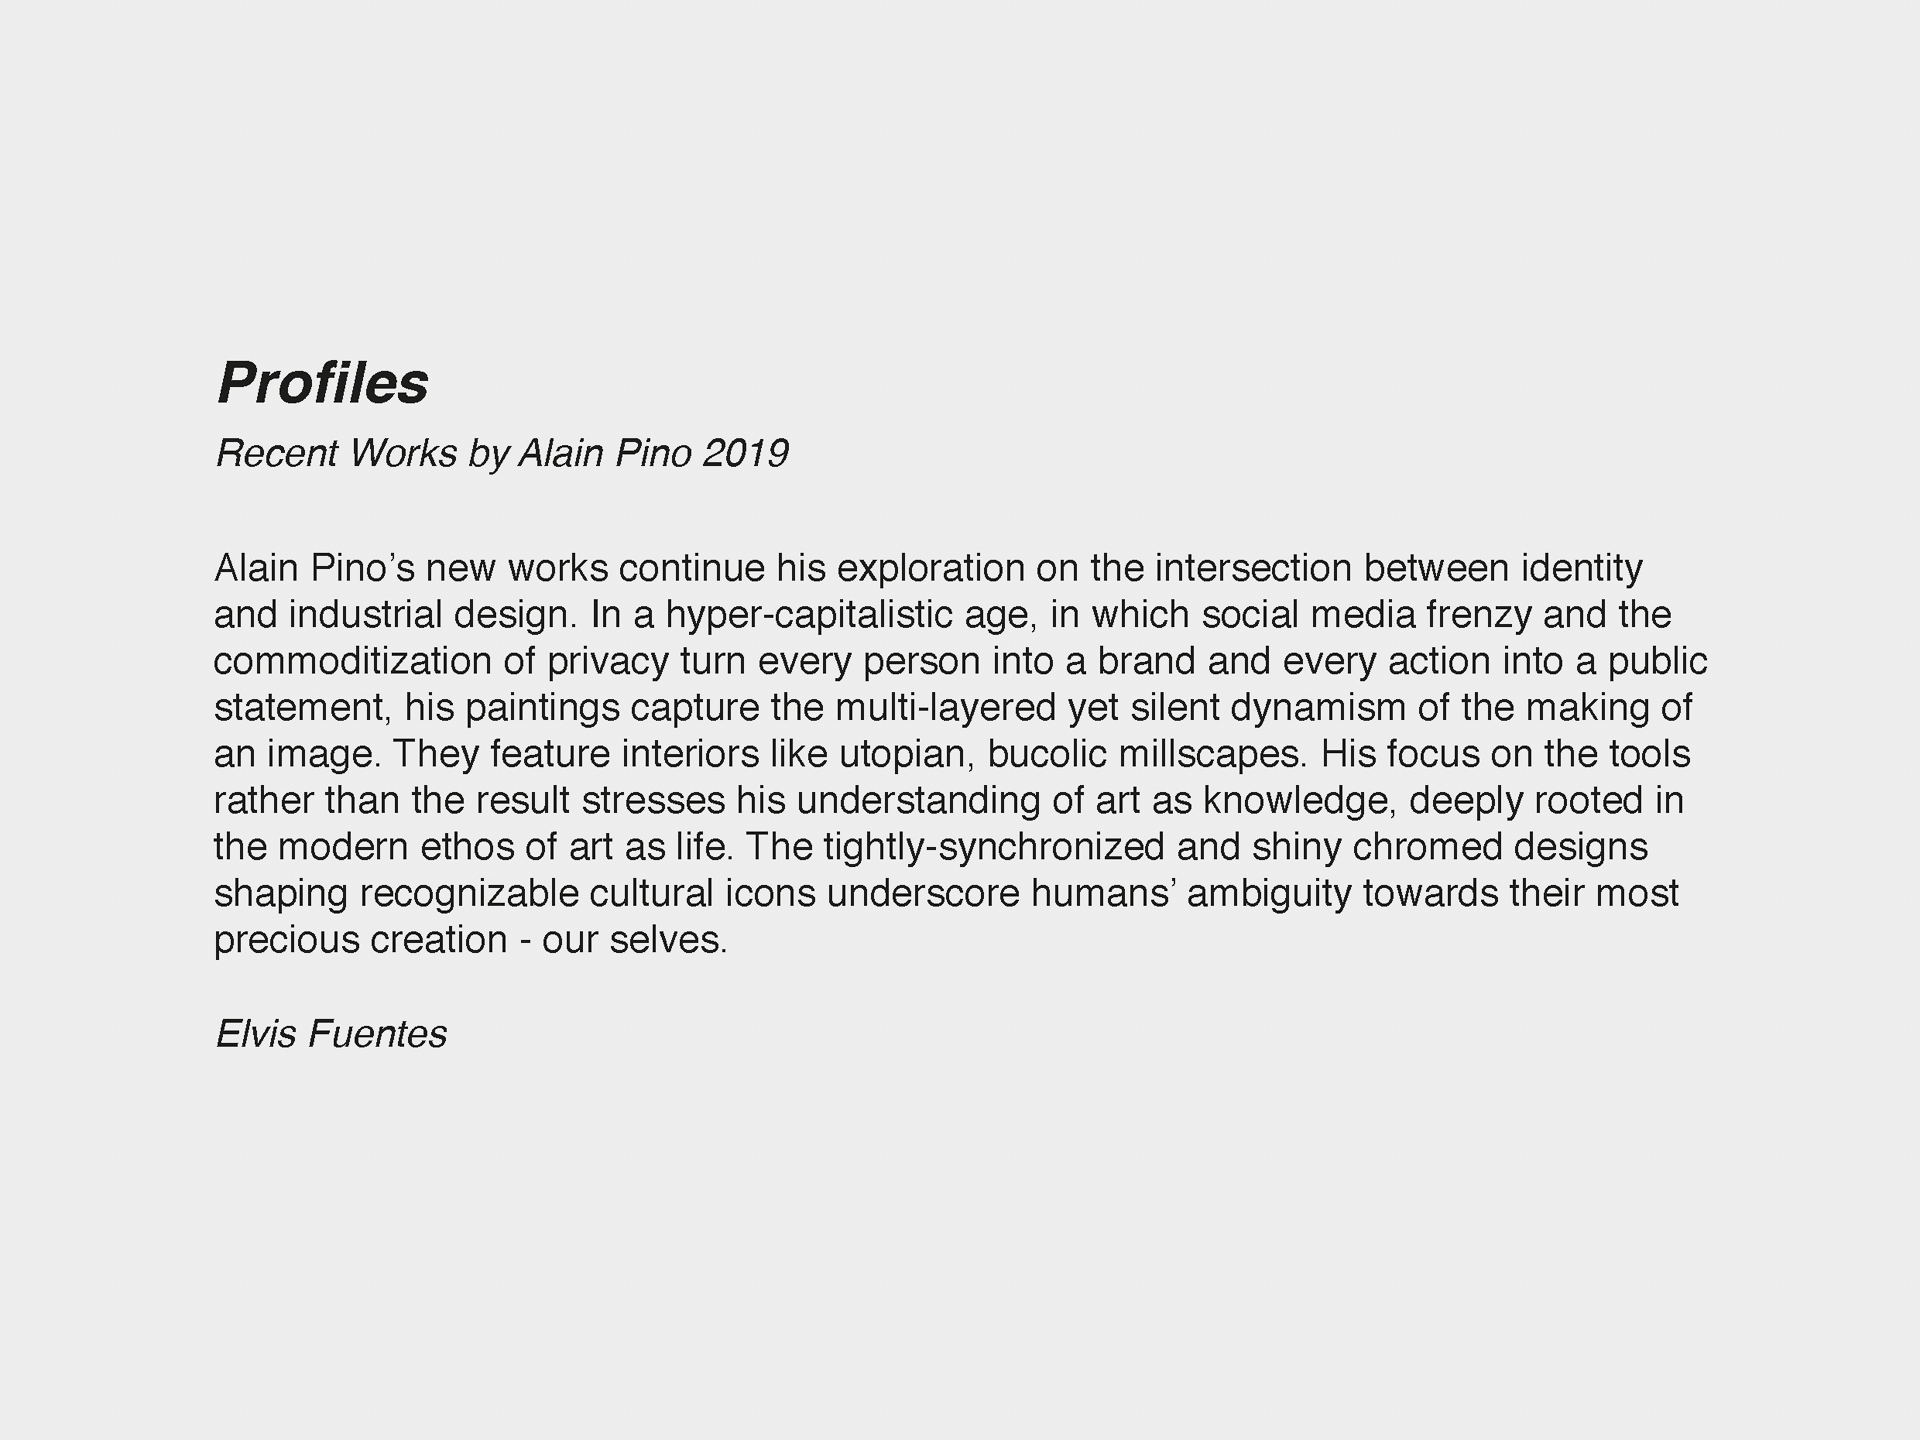 Text by Elvis Fuentes (Profile) Personal Expo 2019